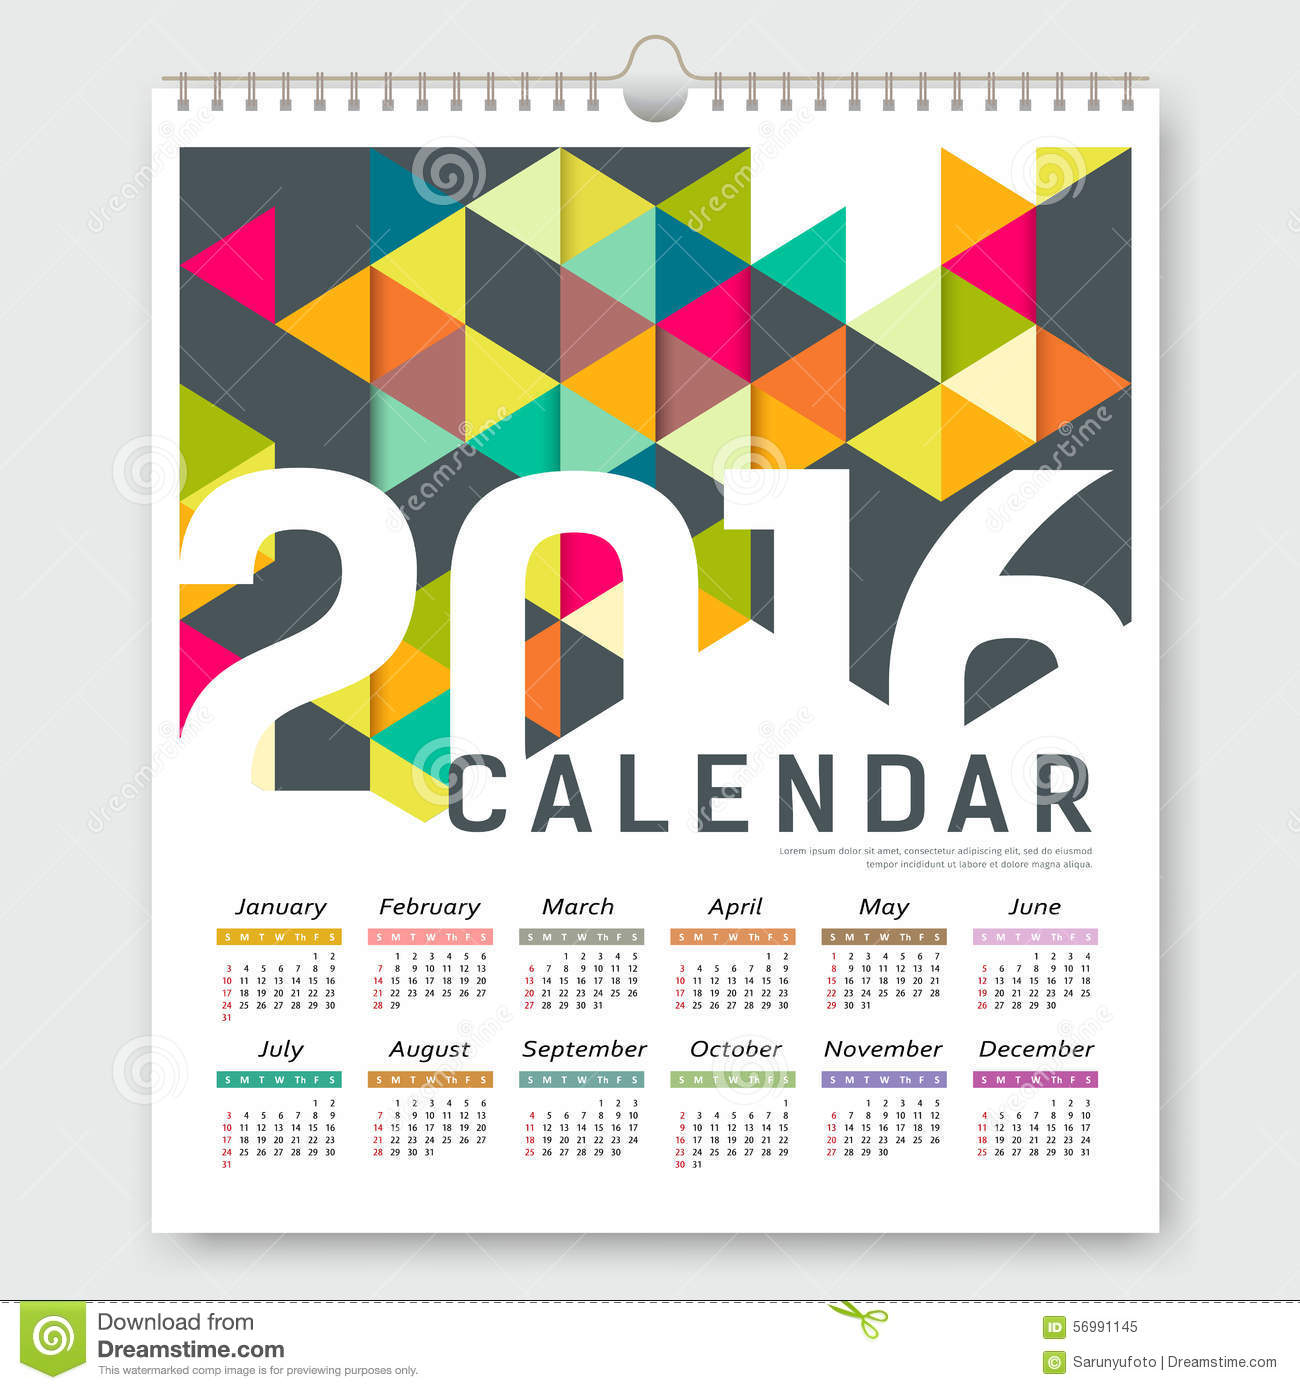 Corporate Calendar Design 2016 : Calendar colorful triangle geometric design stock